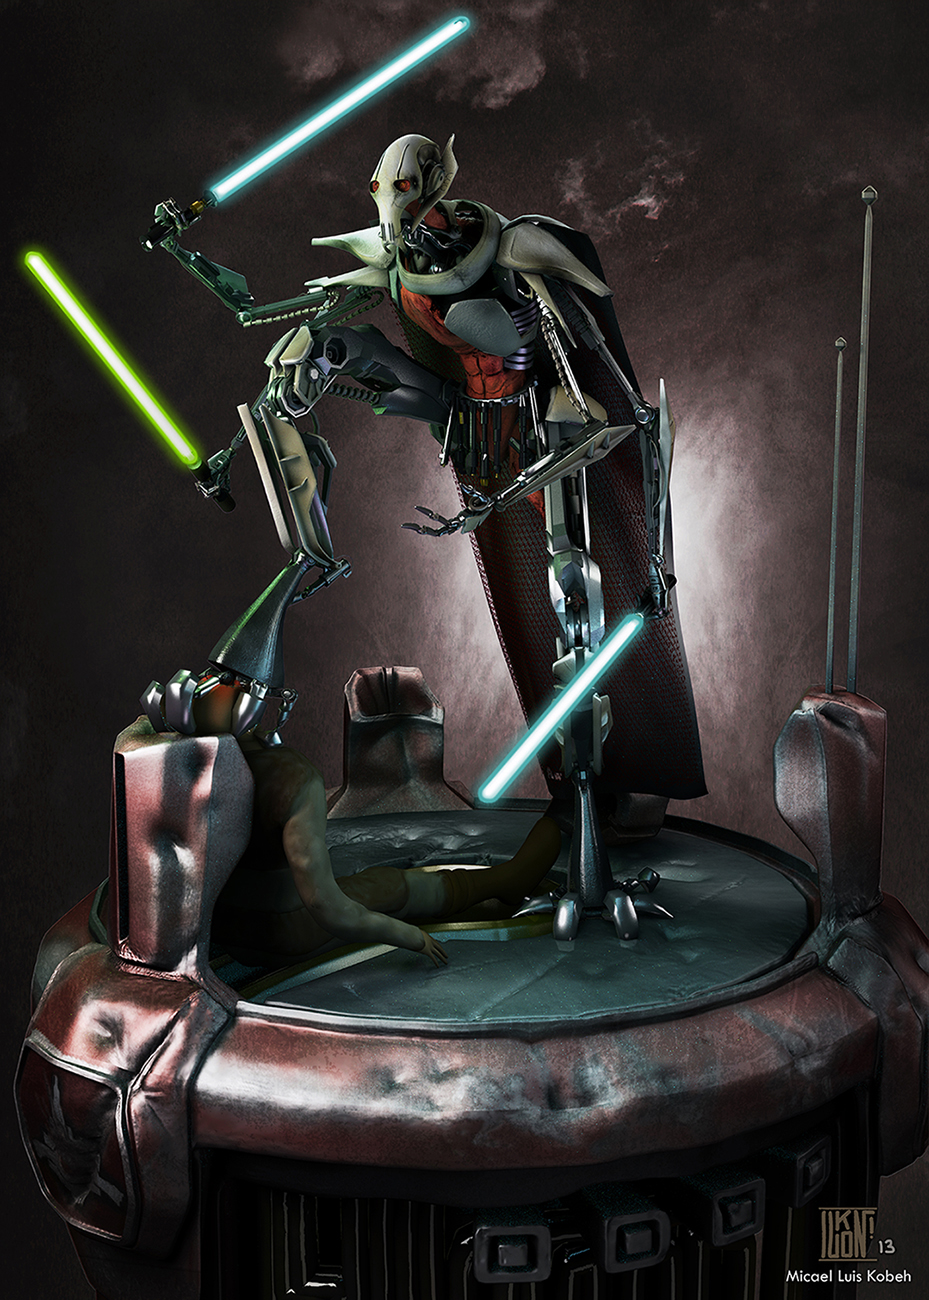 General Grievous reinterpretation